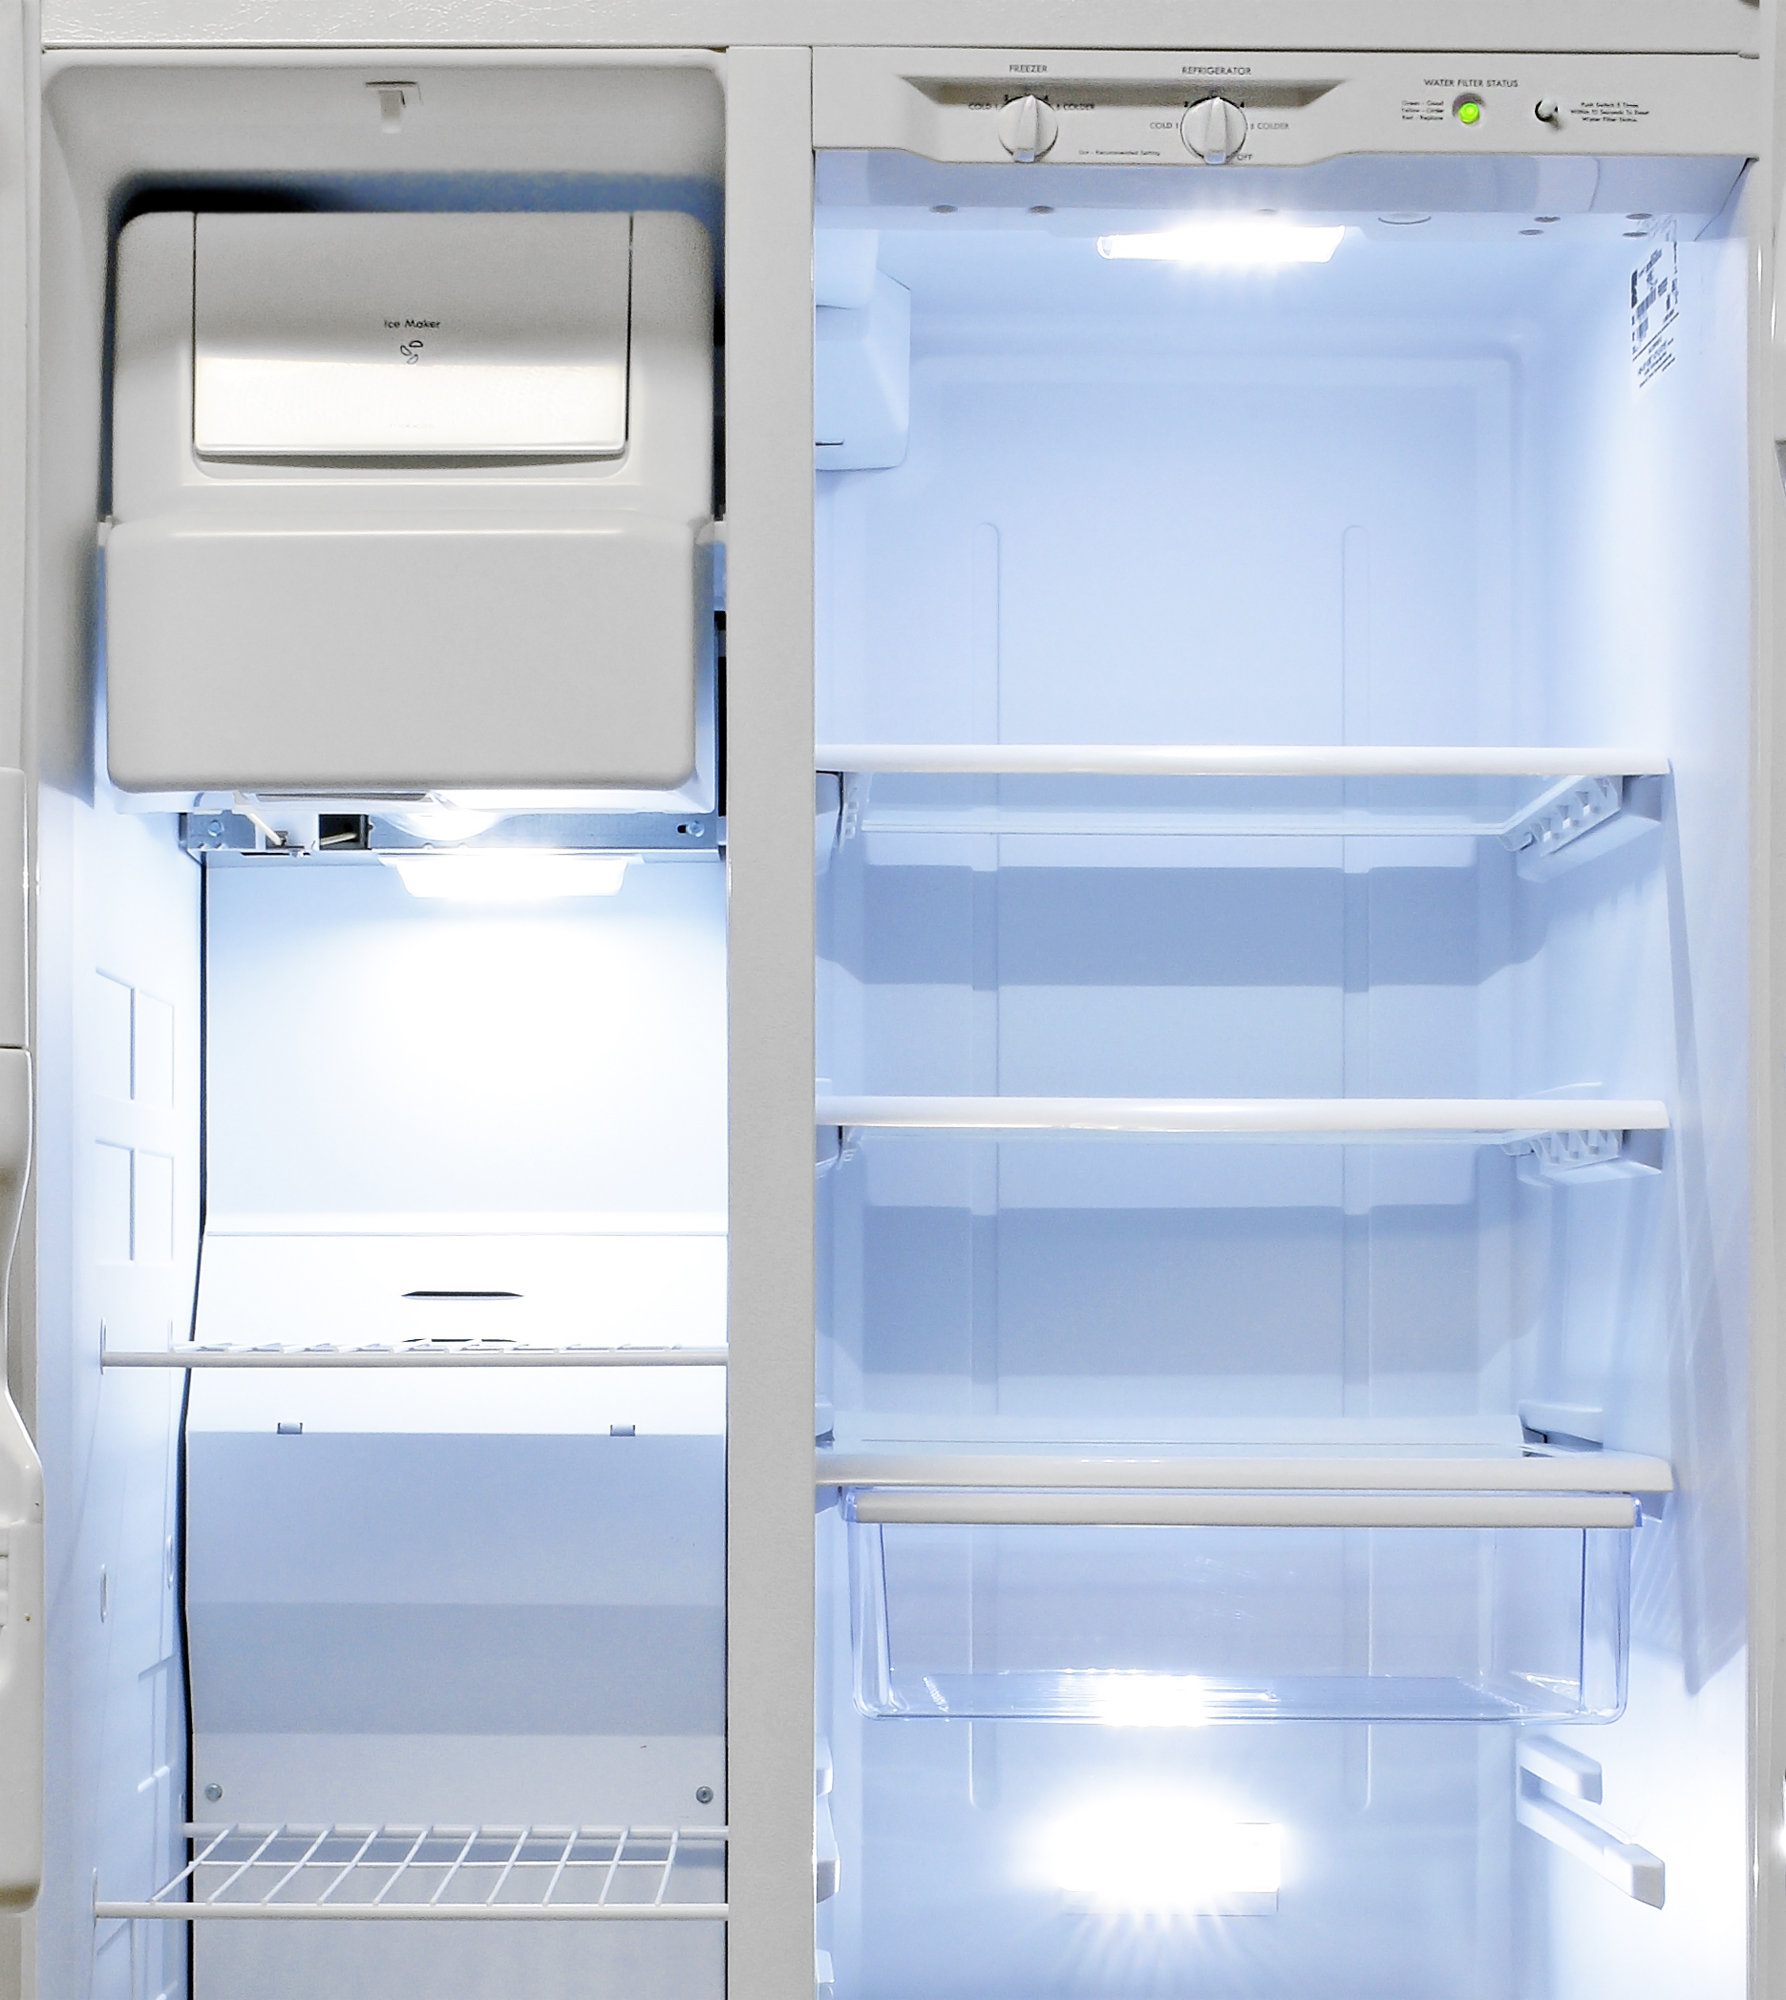 The Kenmore 51122's fridge has more shelves than its freezer, but neither have many options for height adjustments.